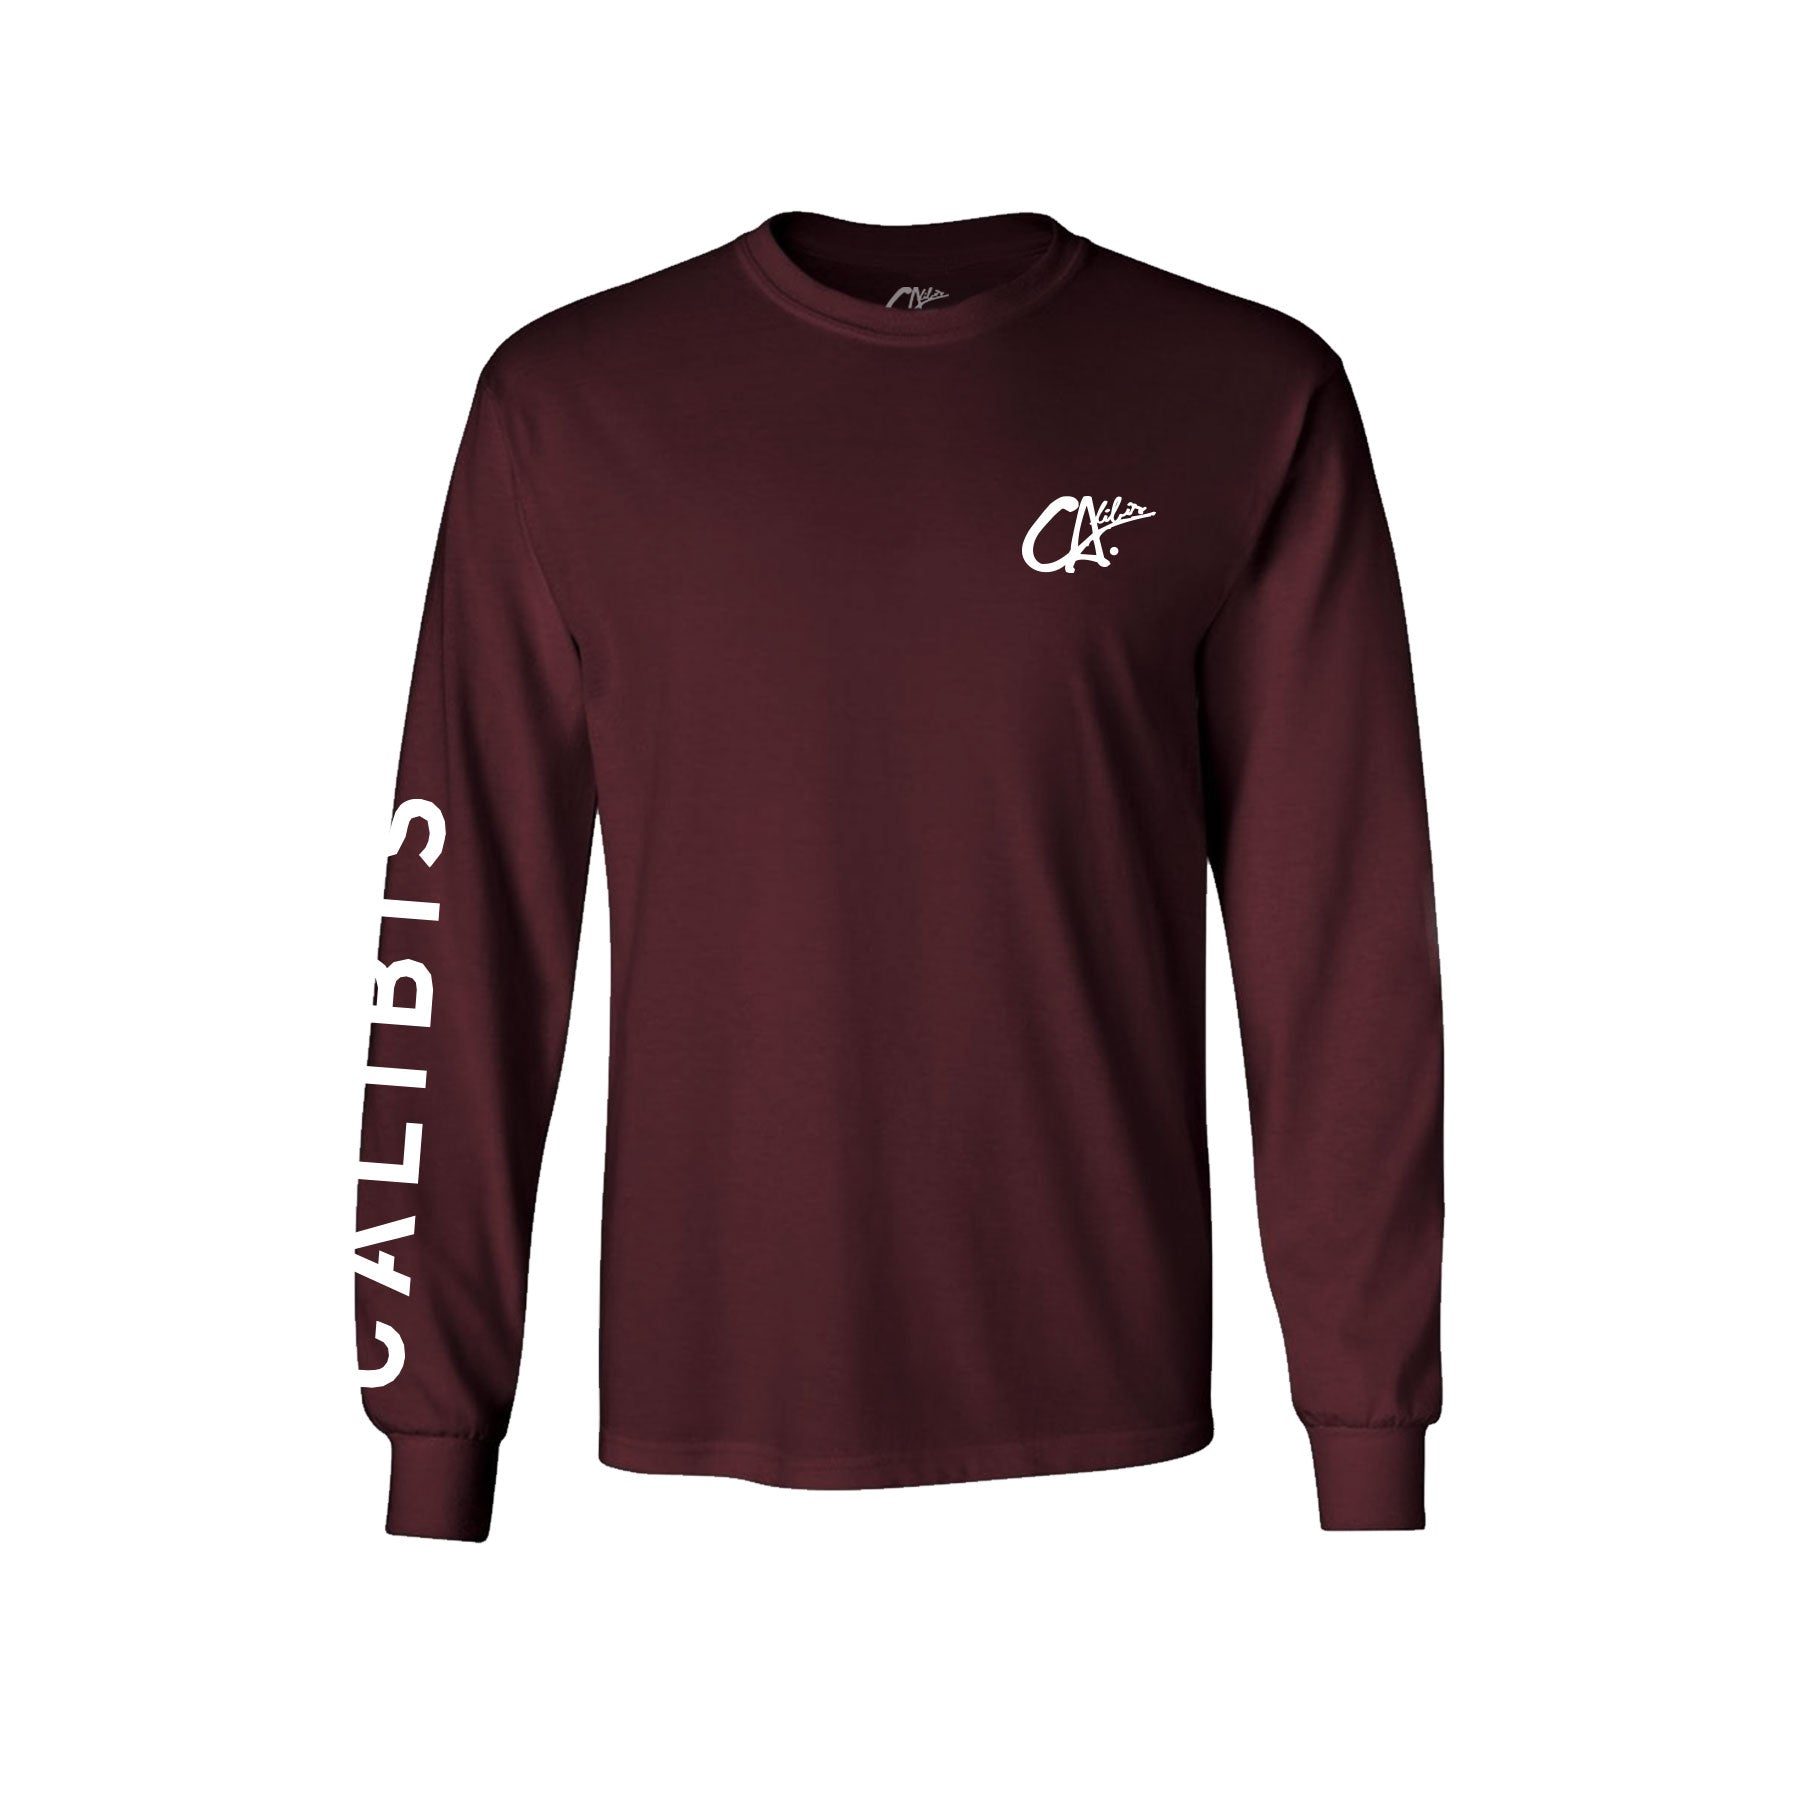 OG Long Sleeve Tee by Calibis Clothing